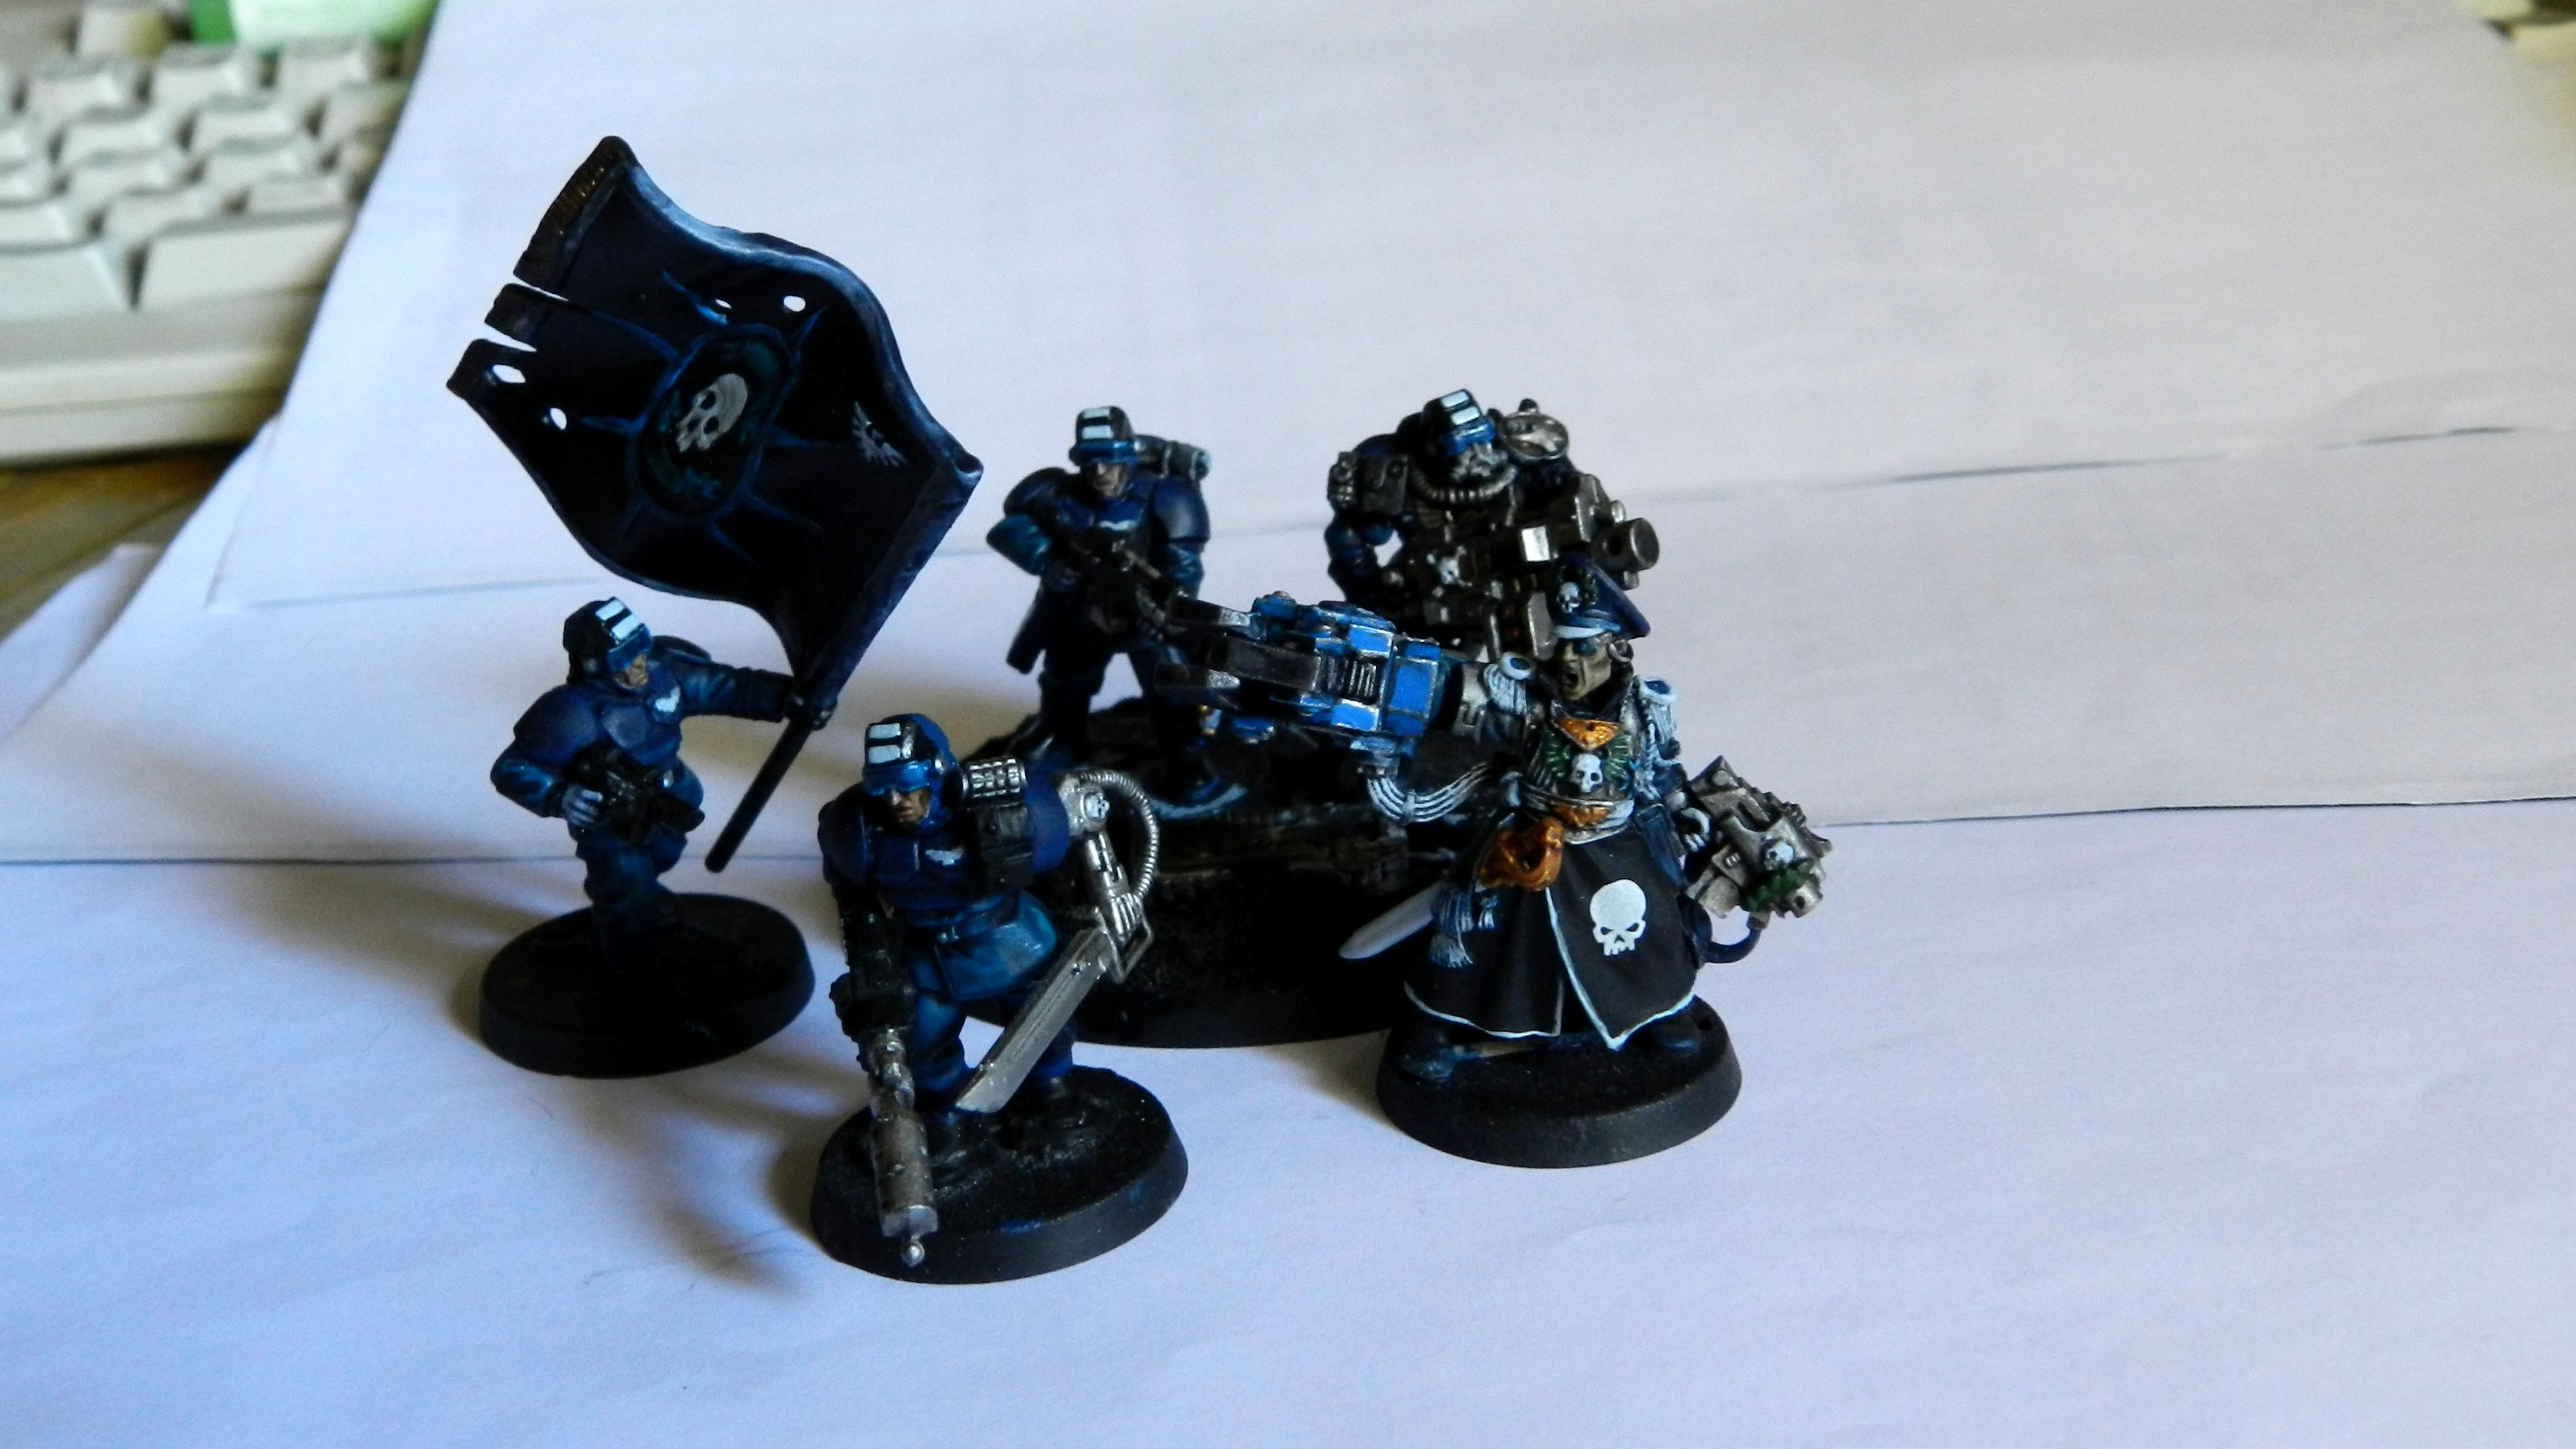 Adeptus Arbites, Cadians, Ccs, Command Squad, Commander, Commissar, Commissar Yarrick, Company Command Squad, Conversion, Count As, Elysian, Elysians, Gears Of War, Grenadier, Grenadiers, Guardsmen, Imperial Guard, Junior Officer, Officer, Power Fist, Power Klaw, Warhammer 40,000, Work In Progress, Yarrick